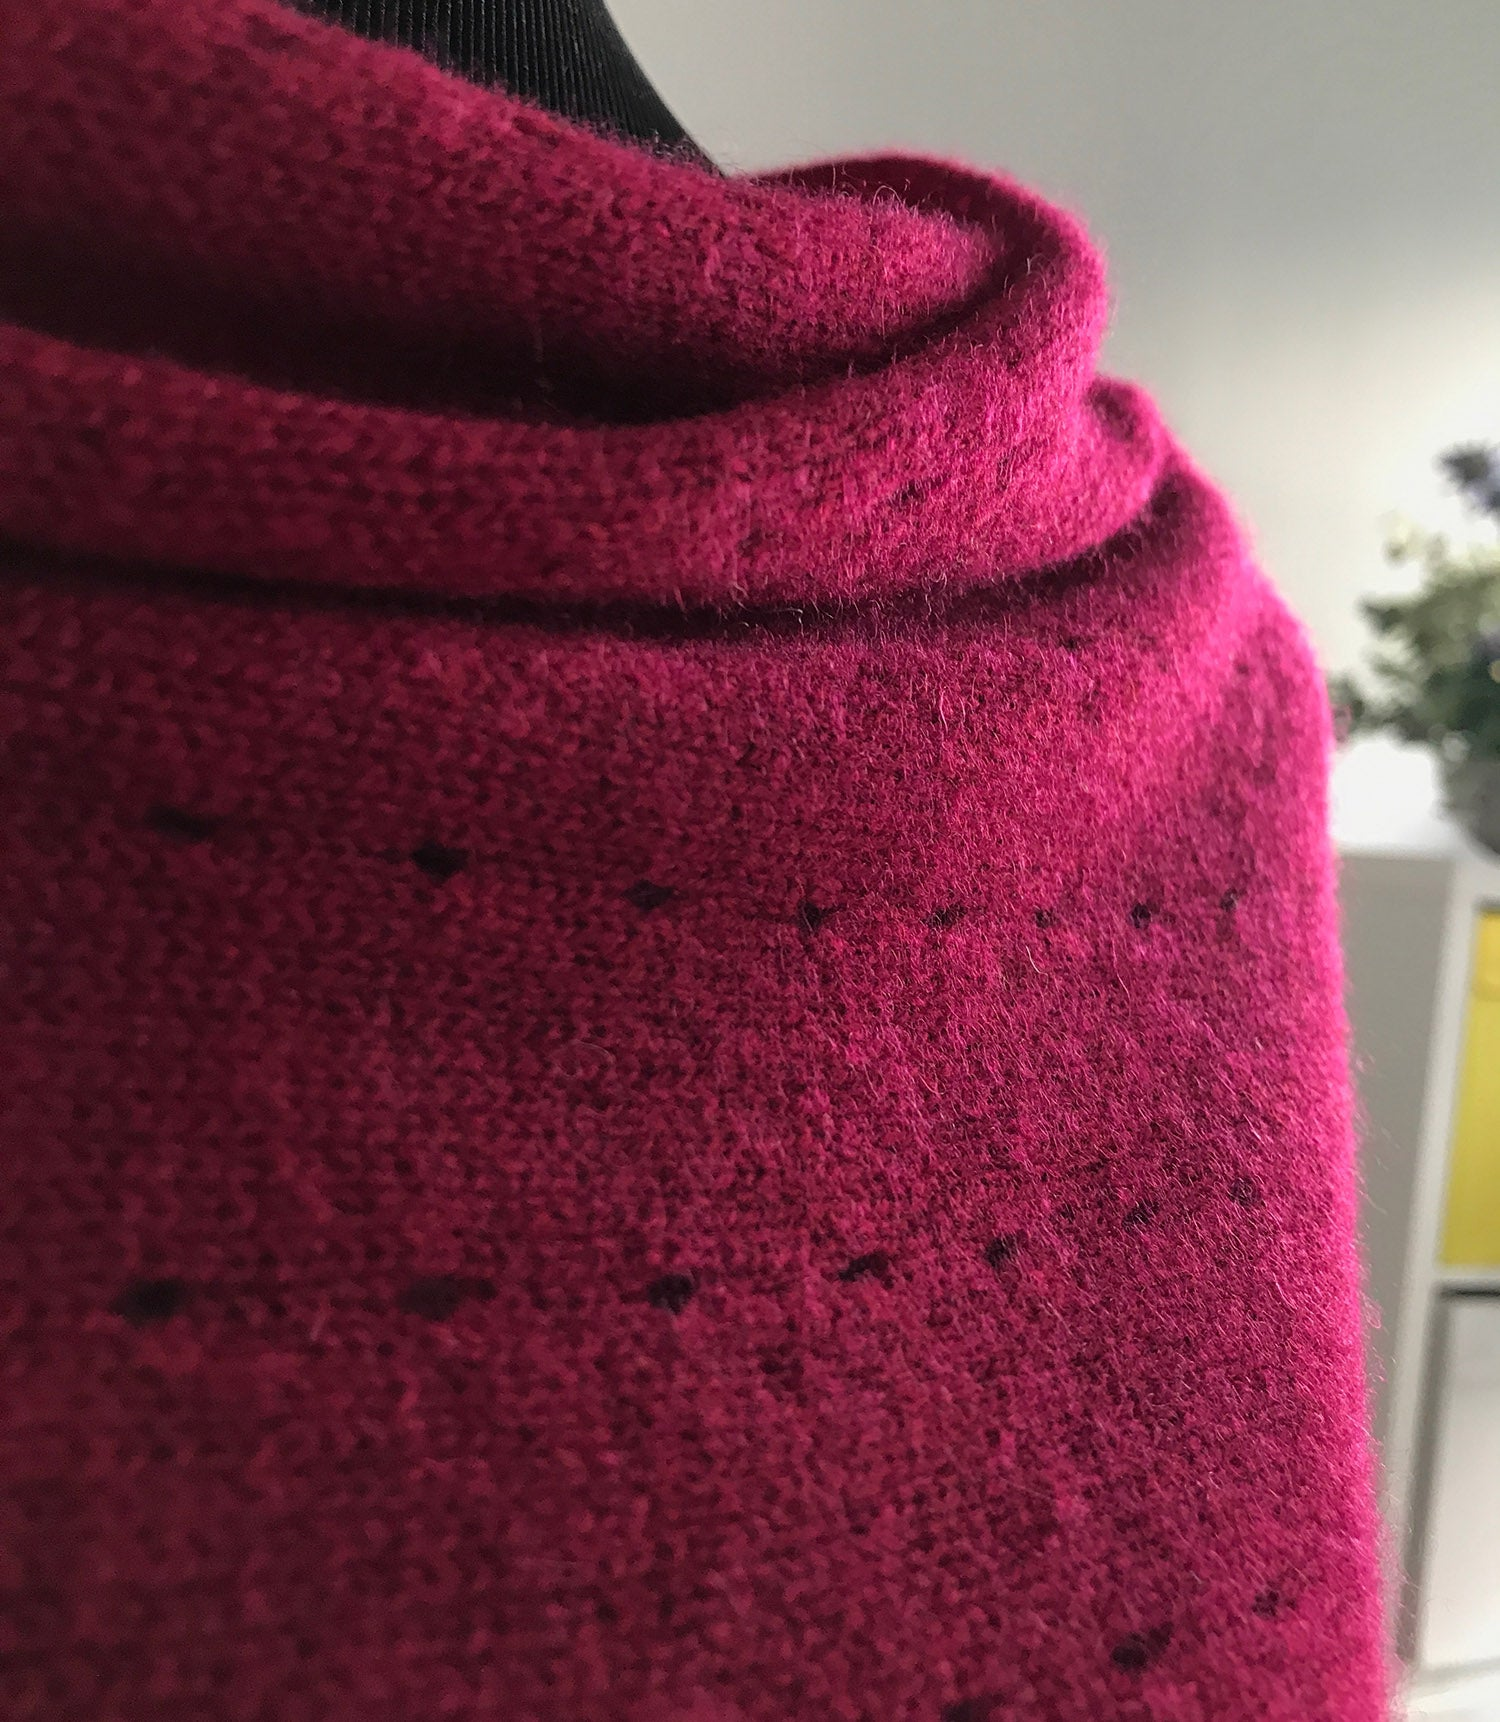 Cherry red Cashmere Poncho UK, pink Women Wrap, Cape, Shawls, Scarf, shawl, cardigan, light weight, summer poncho, ladies small button poncho sweater sale | SEMON Cashmere